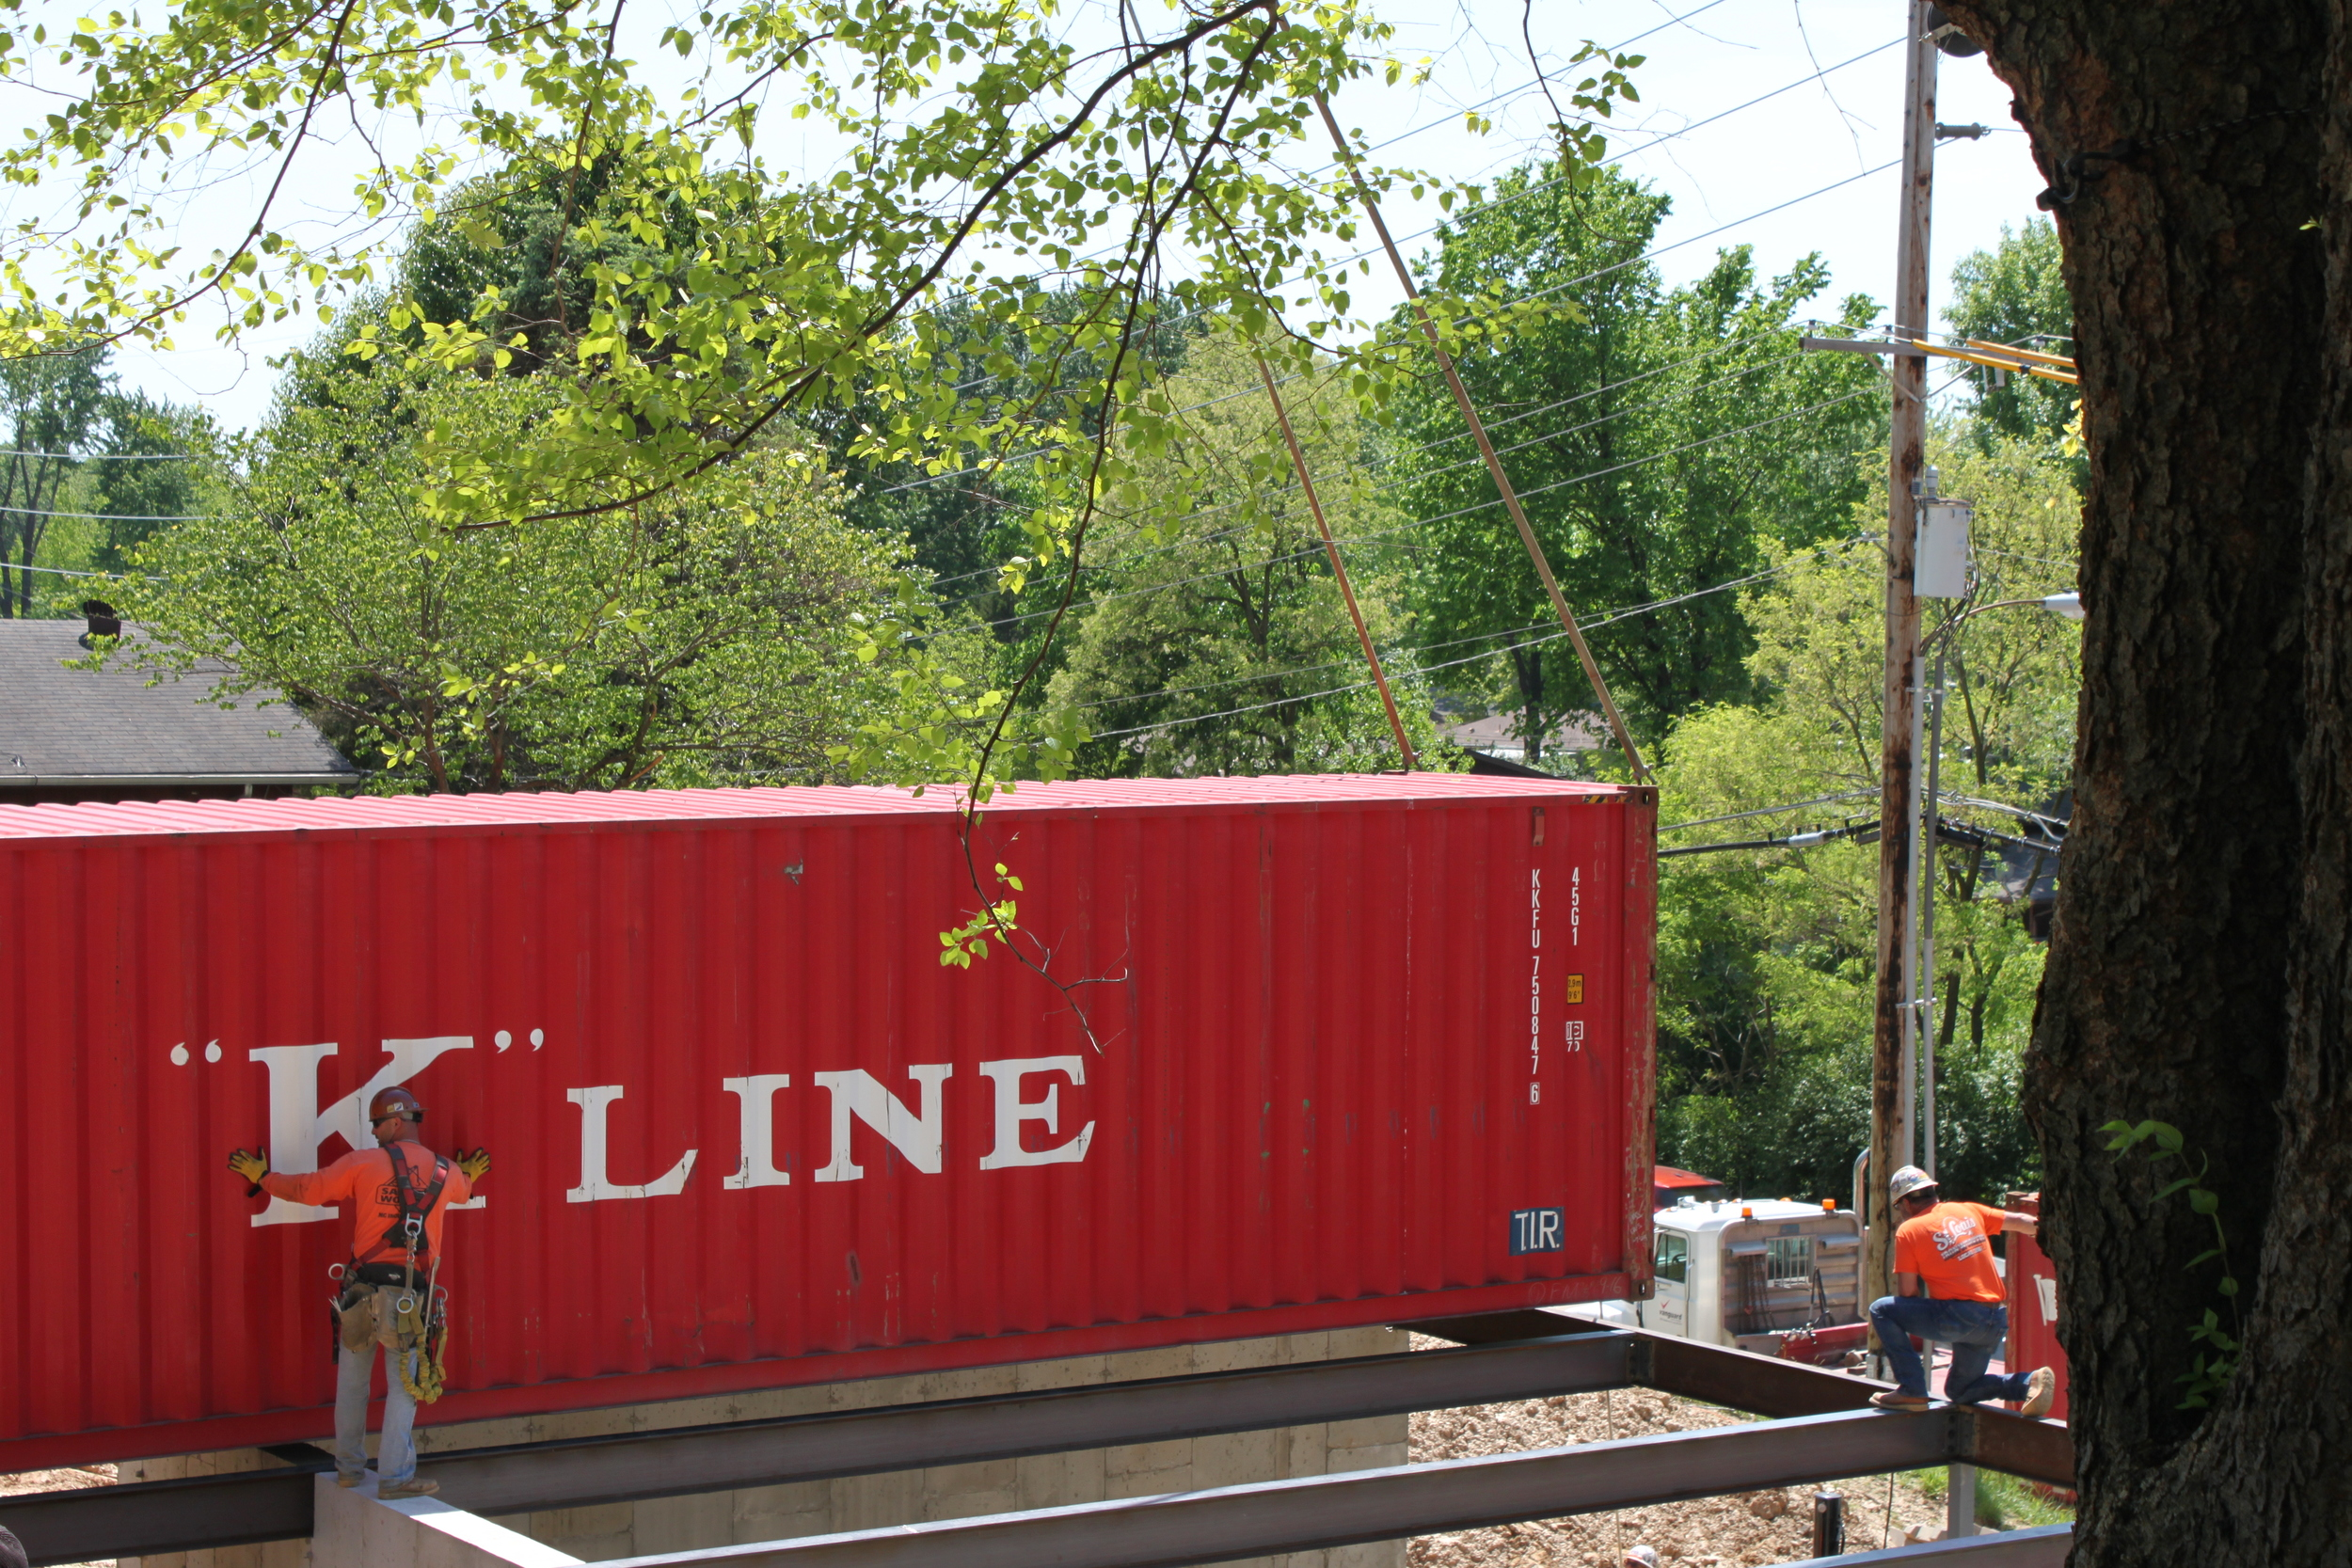 Getting the container into place